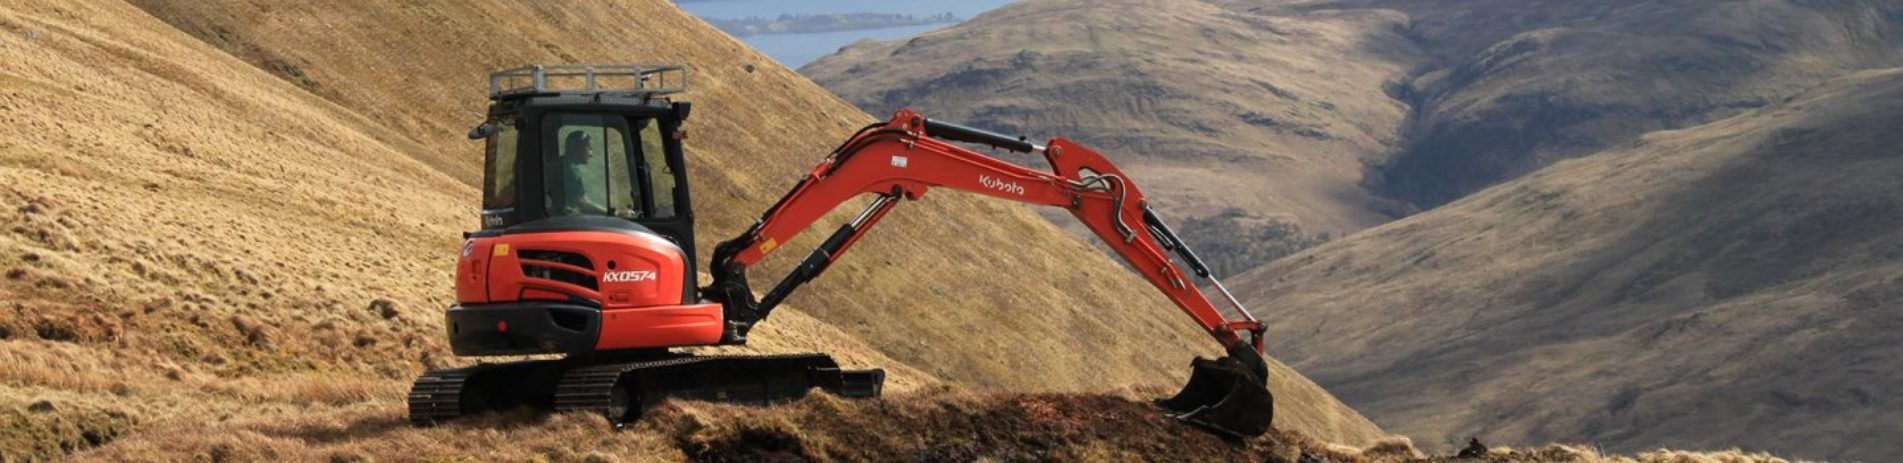 digger-on-mountain